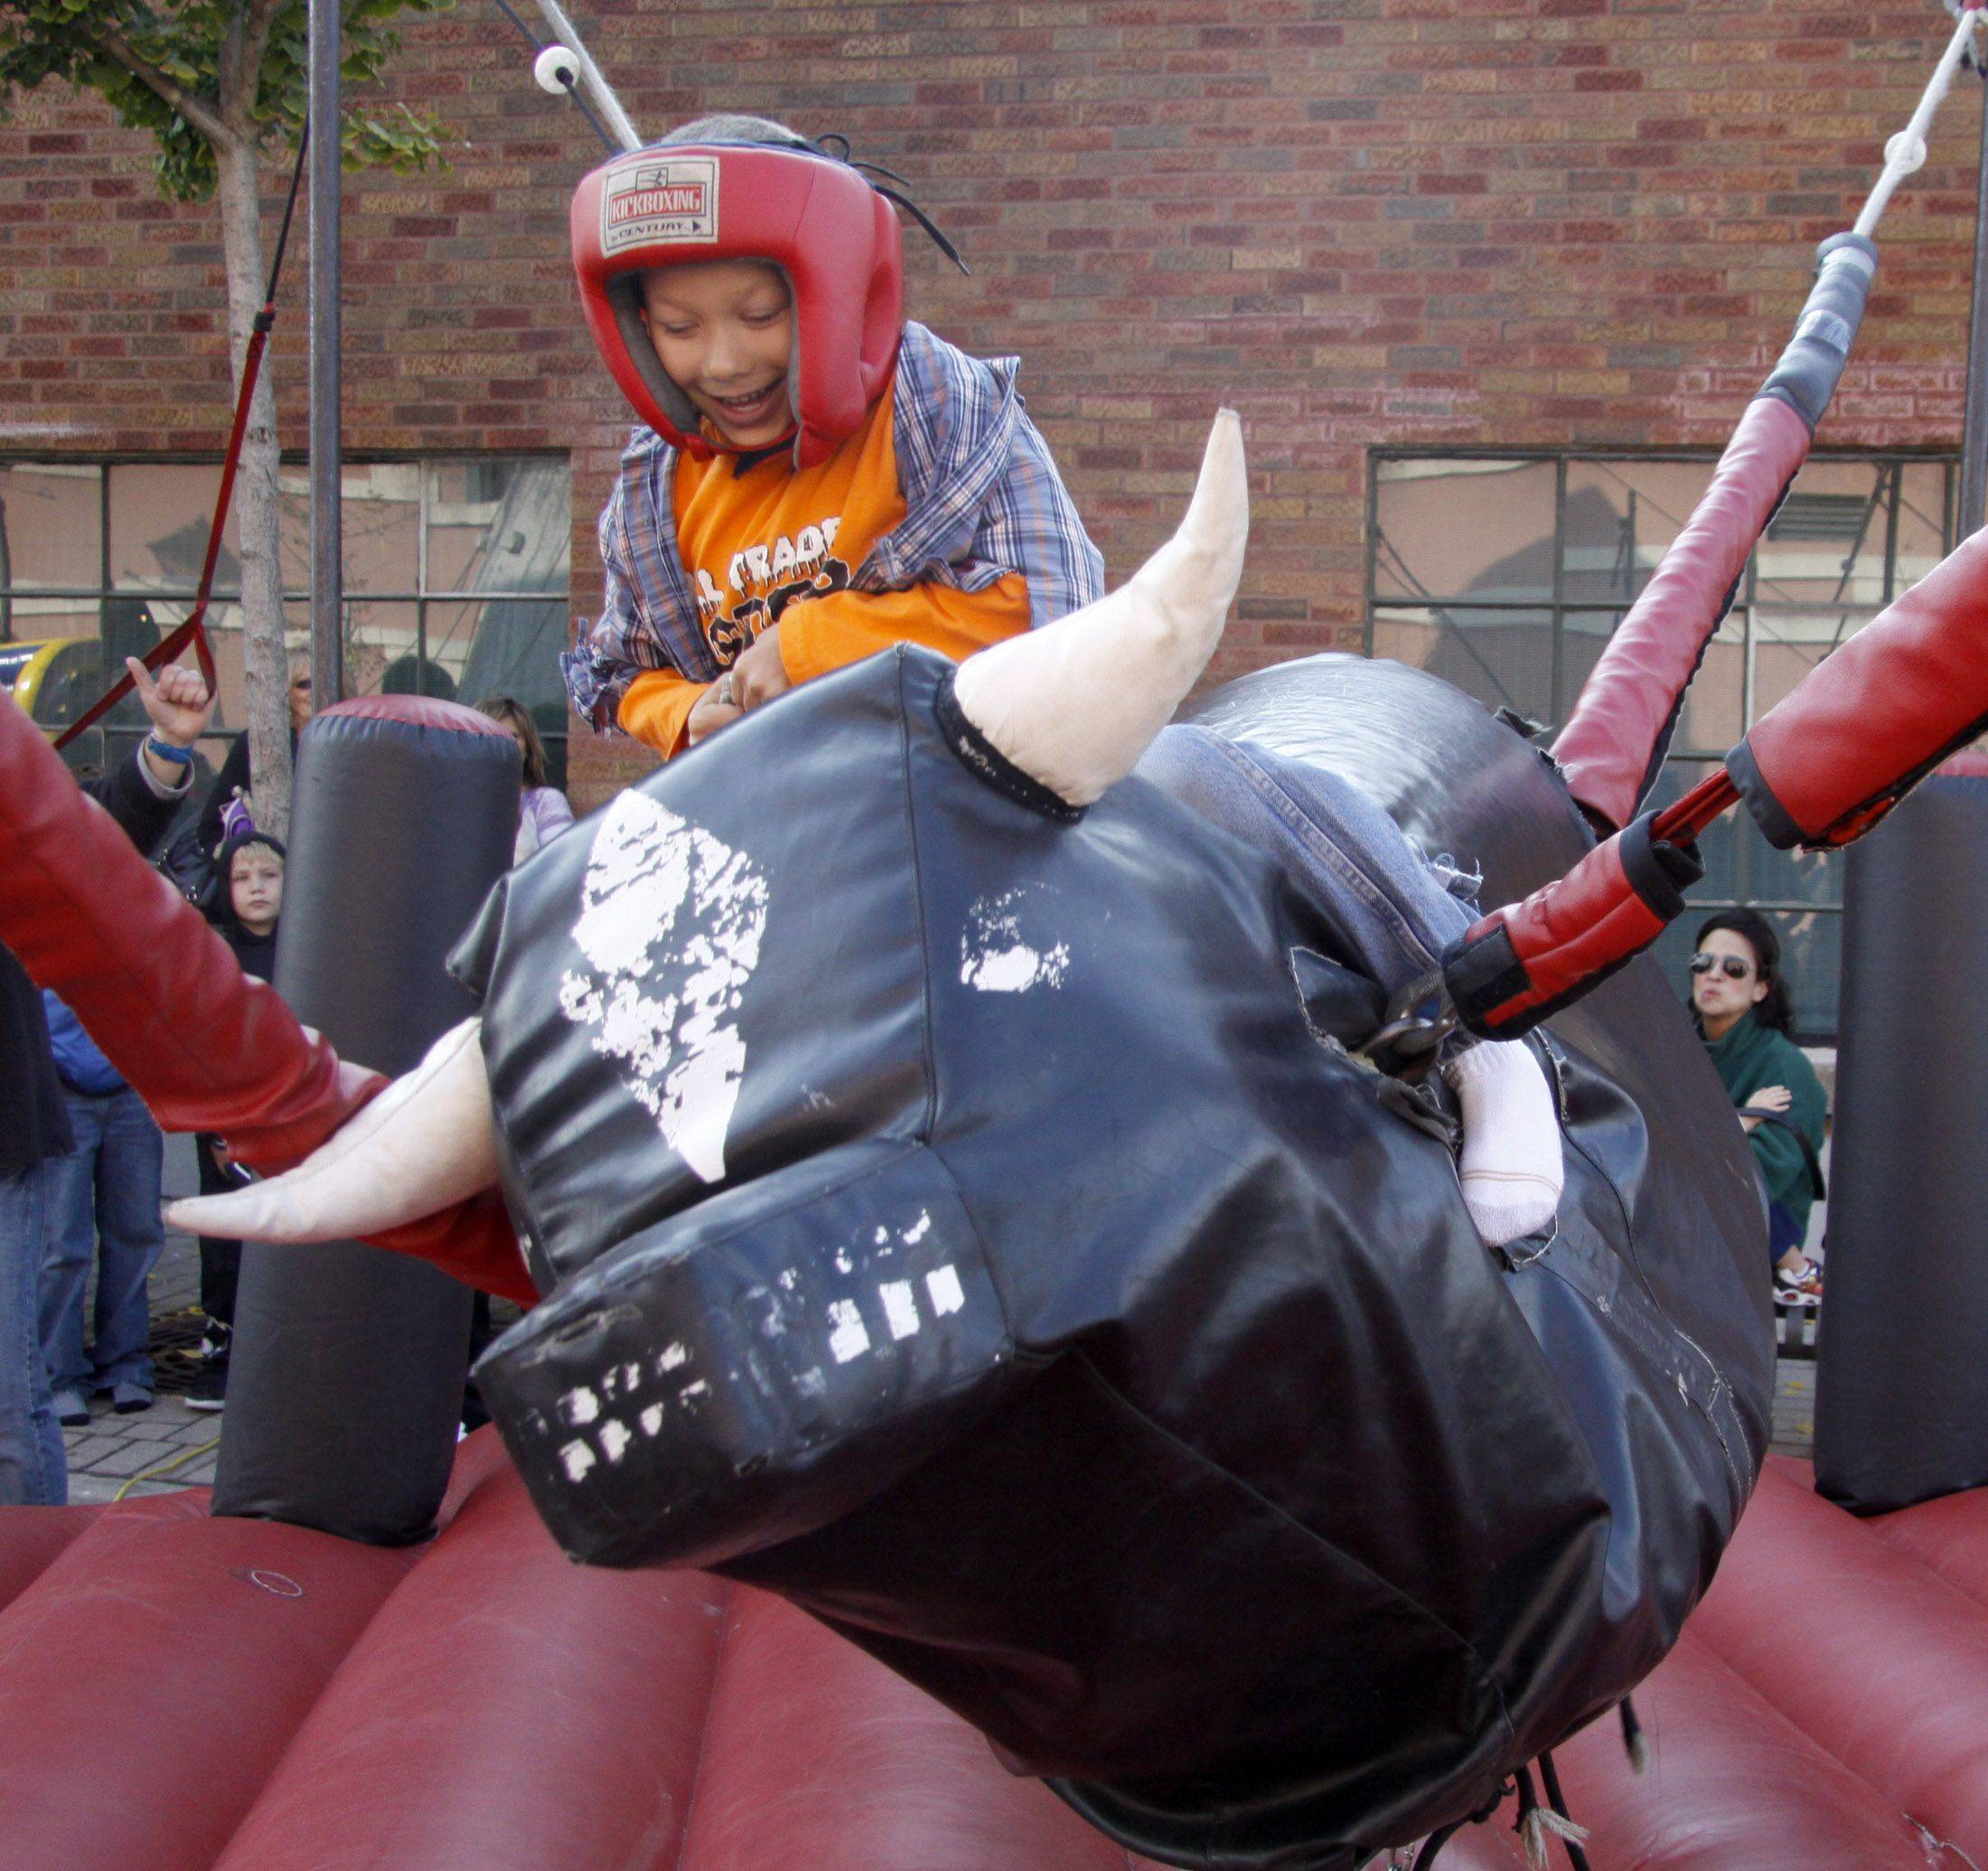 Corbin Servantez, 7, of Lombard tries to stay on the bull at the Spooktacular Fall Festival in Lombard Saturday. The event was open to the public and the town closed down the streets downtown for the event.